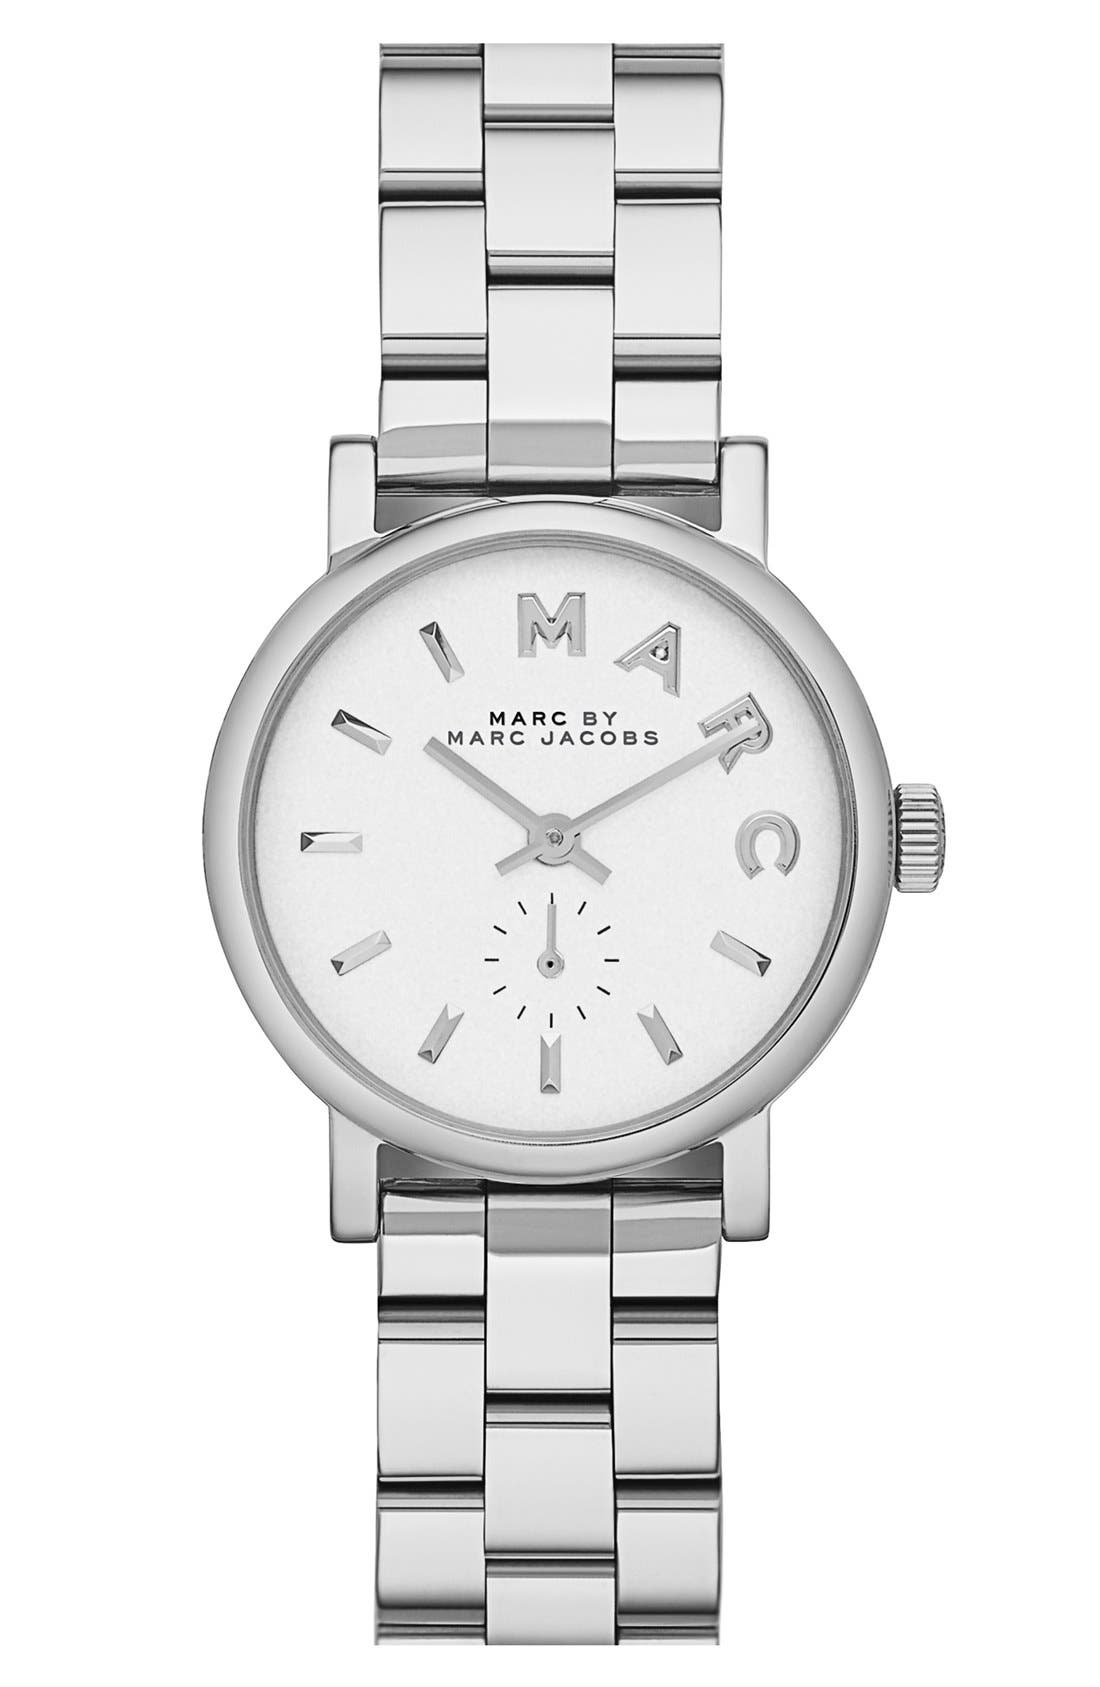 Main Image - MARC JACOBS 'Baker' Round Bracelet Watch, 28mm